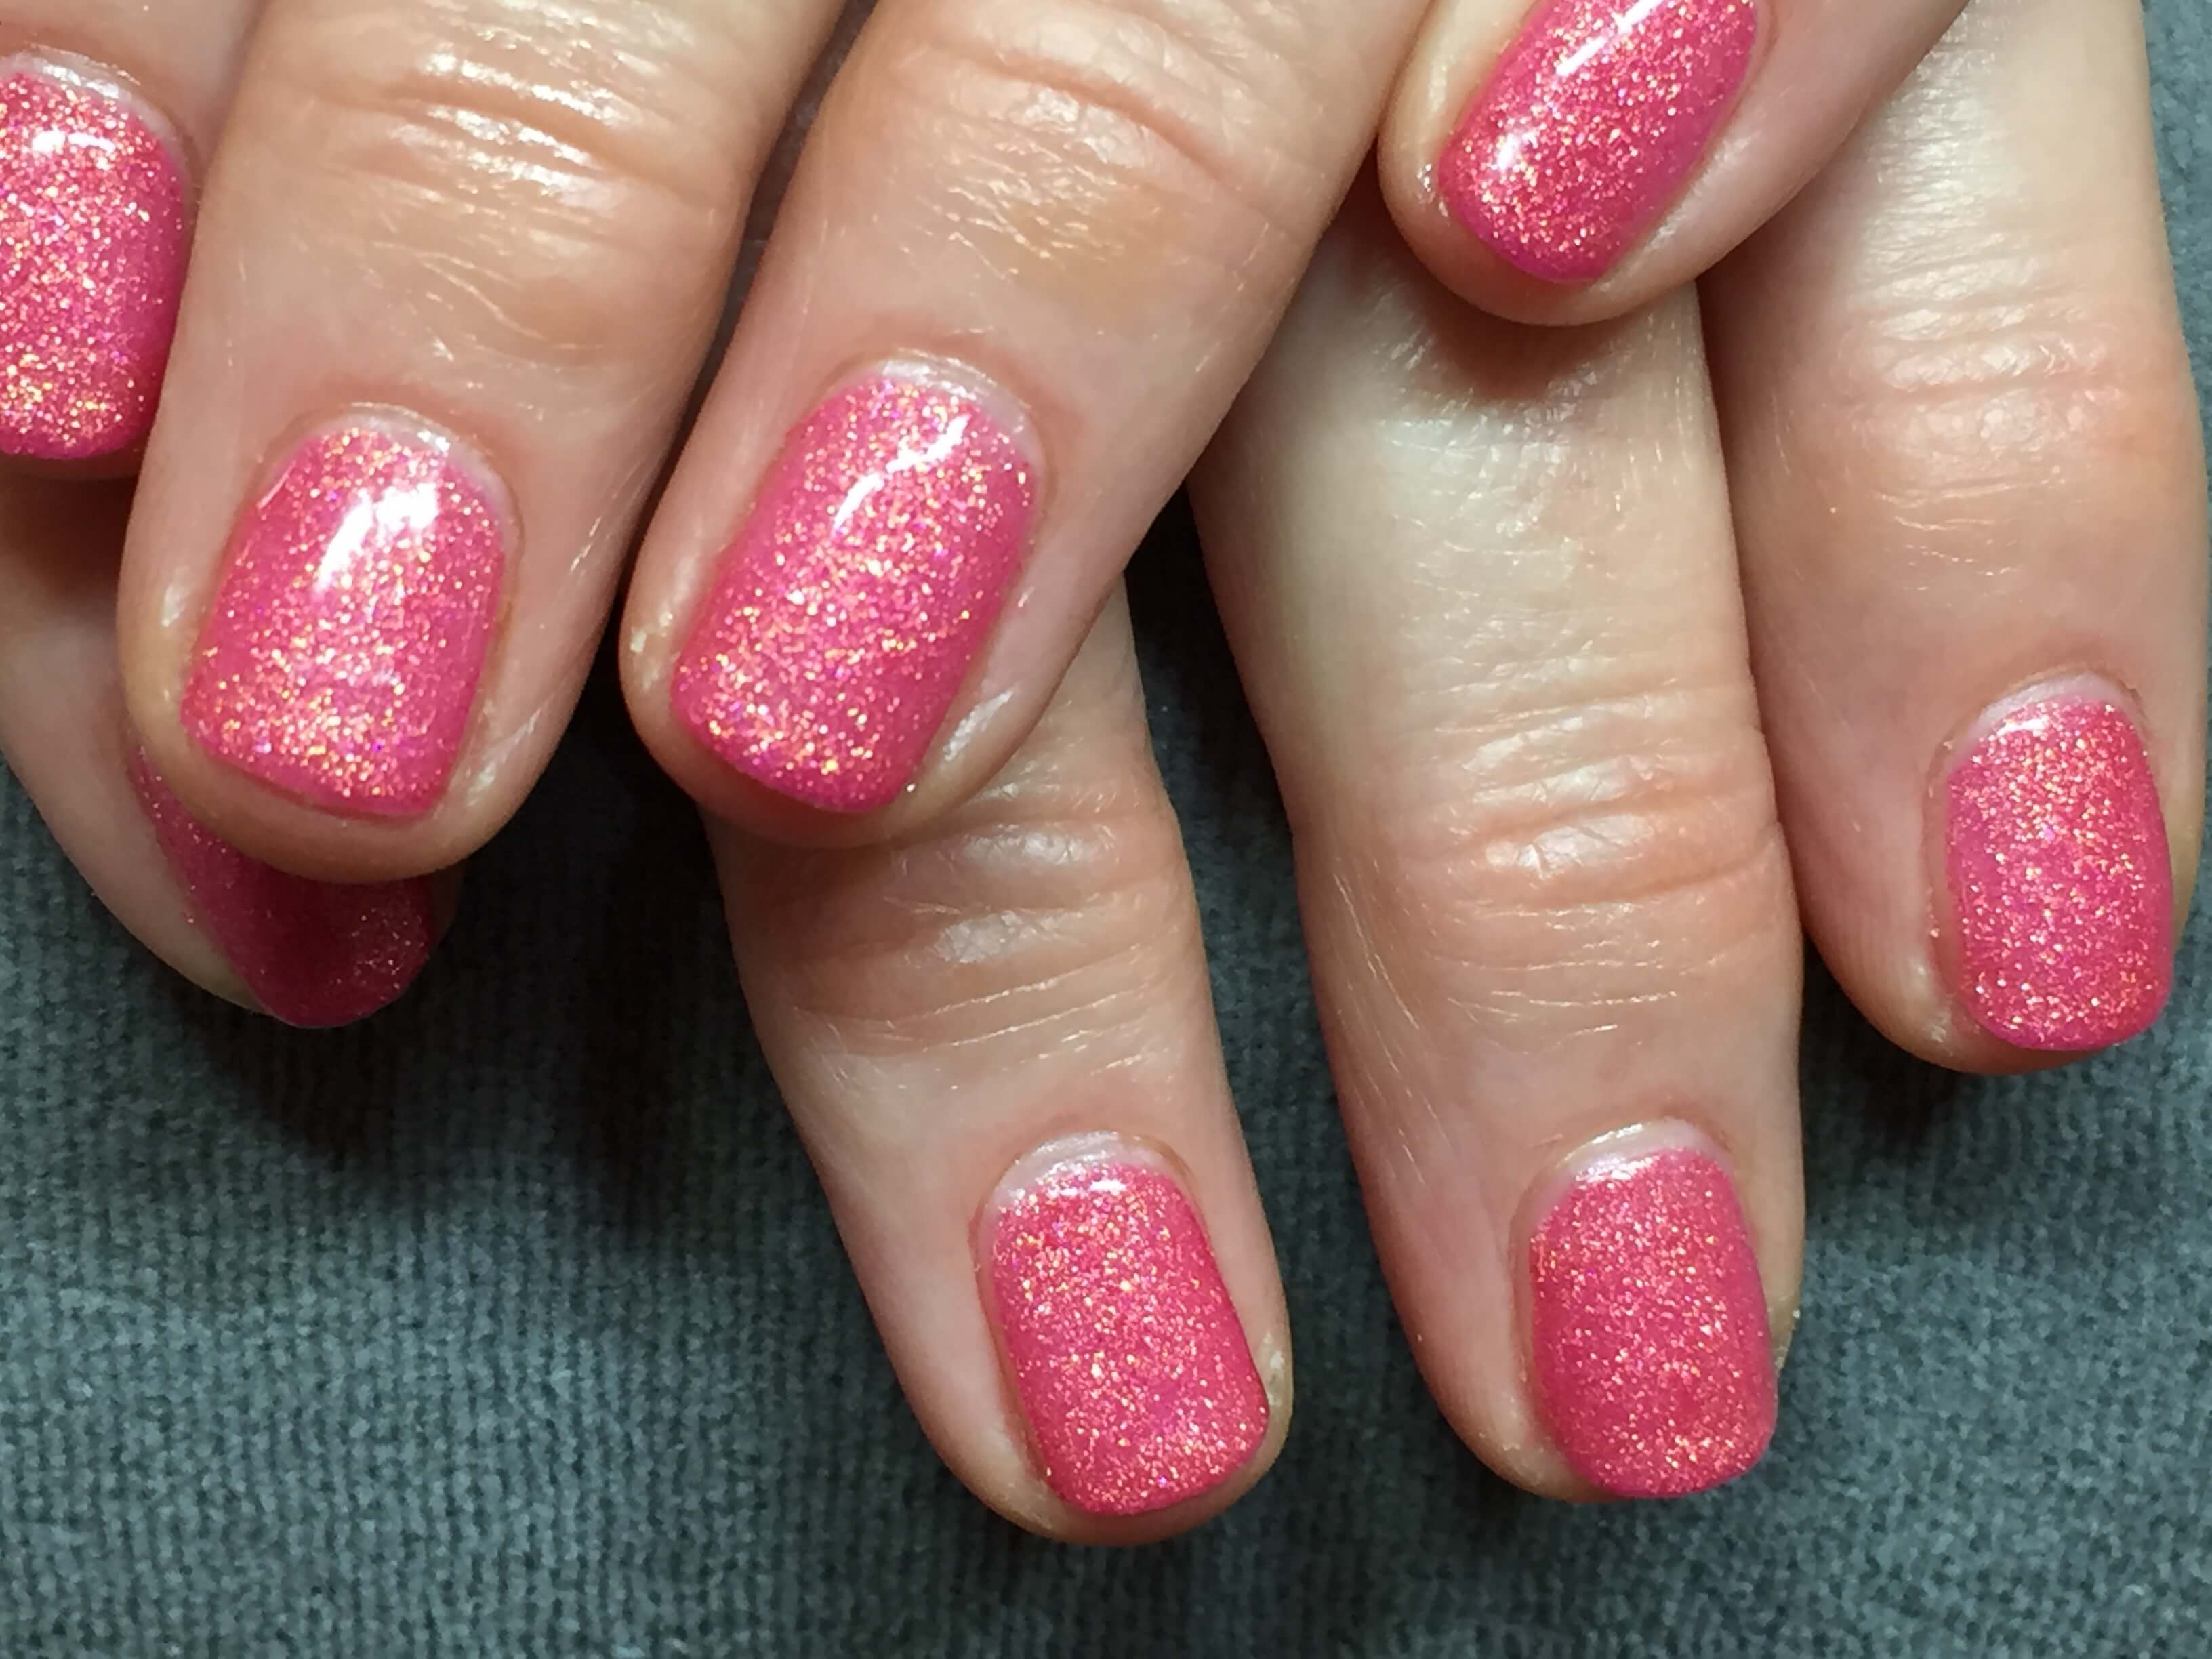 Pink Bio Sculpture Gel Nails